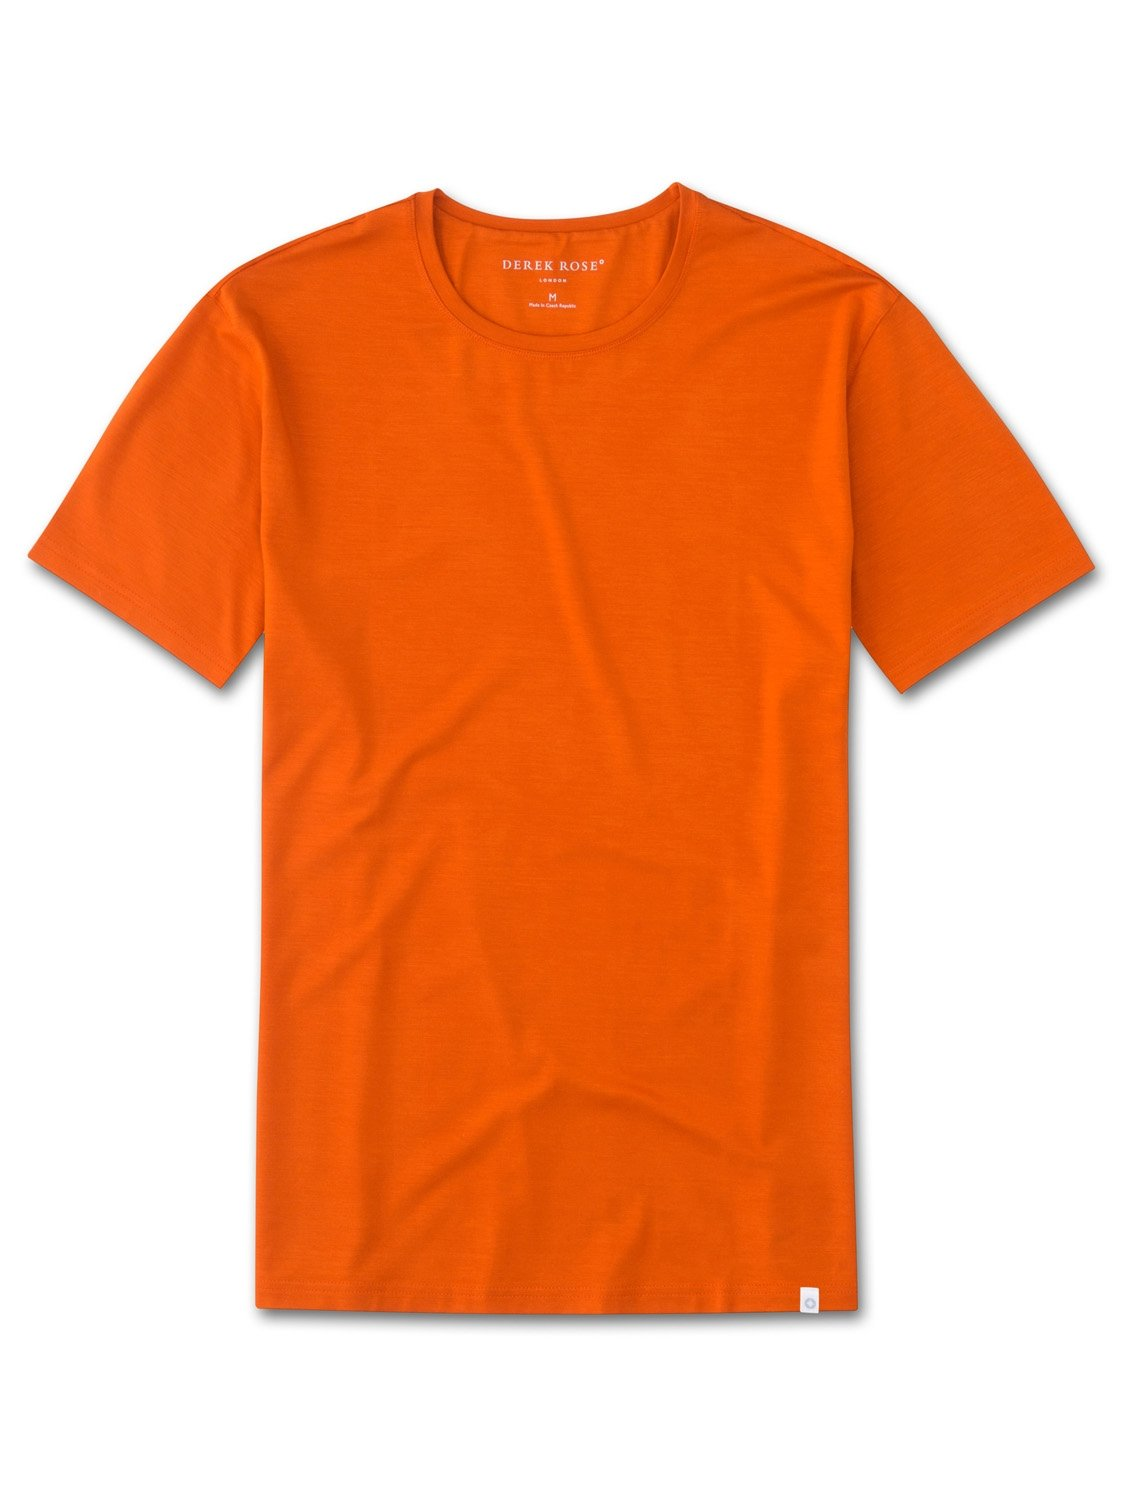 Men's Short Sleeve T-Shirt Basel 4 Micro Modal Stretch Orange